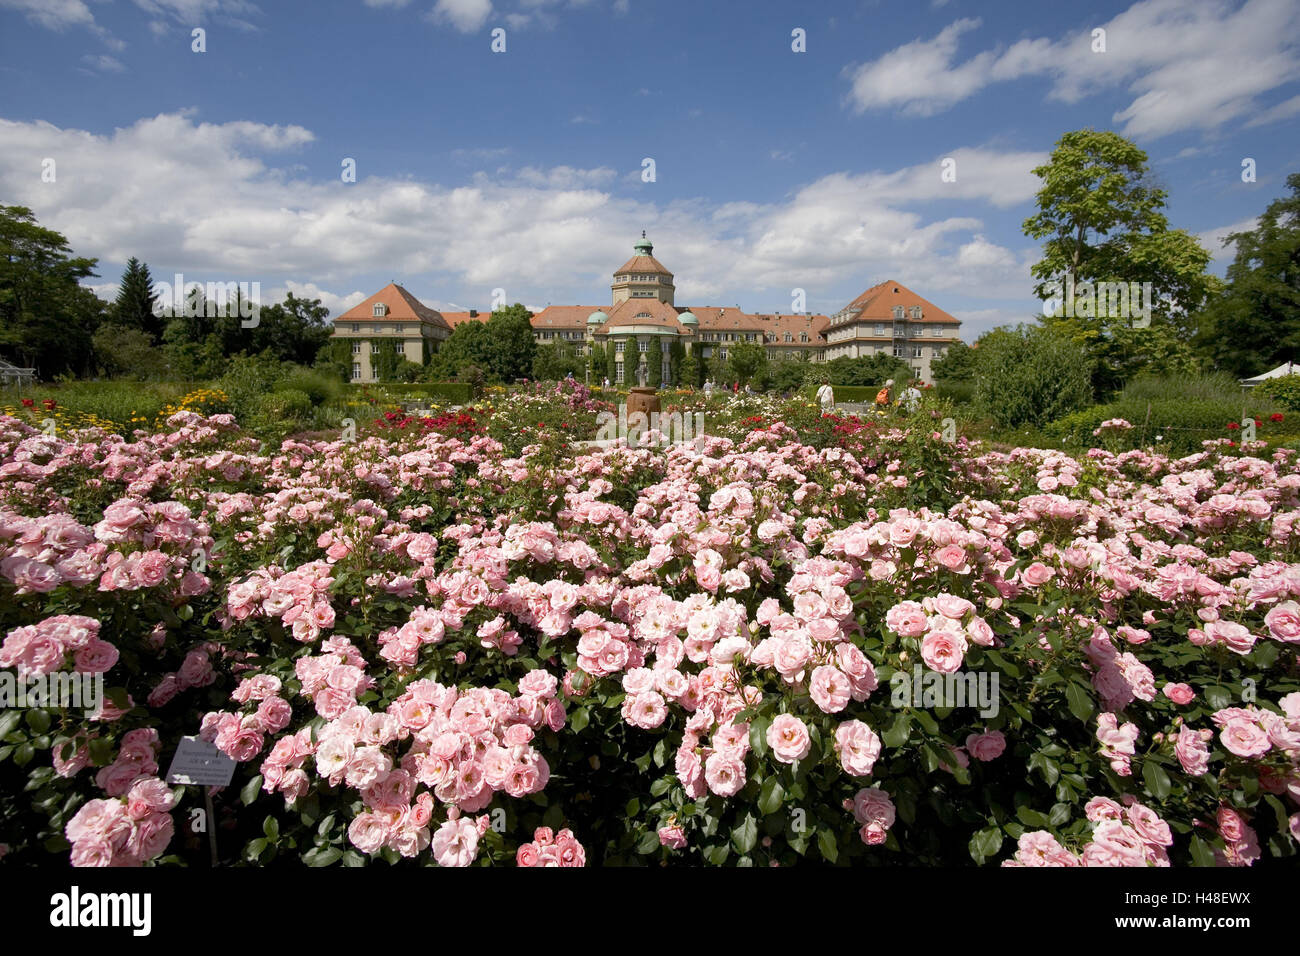 Captivating Germany, Bavaria, Munich, Botanical Garden, Rose Patch, Nymph Castle,  Institute Building, Rose Garden, Flowers, Blossom, Pink, Excessively,  Summer, Outside, ...